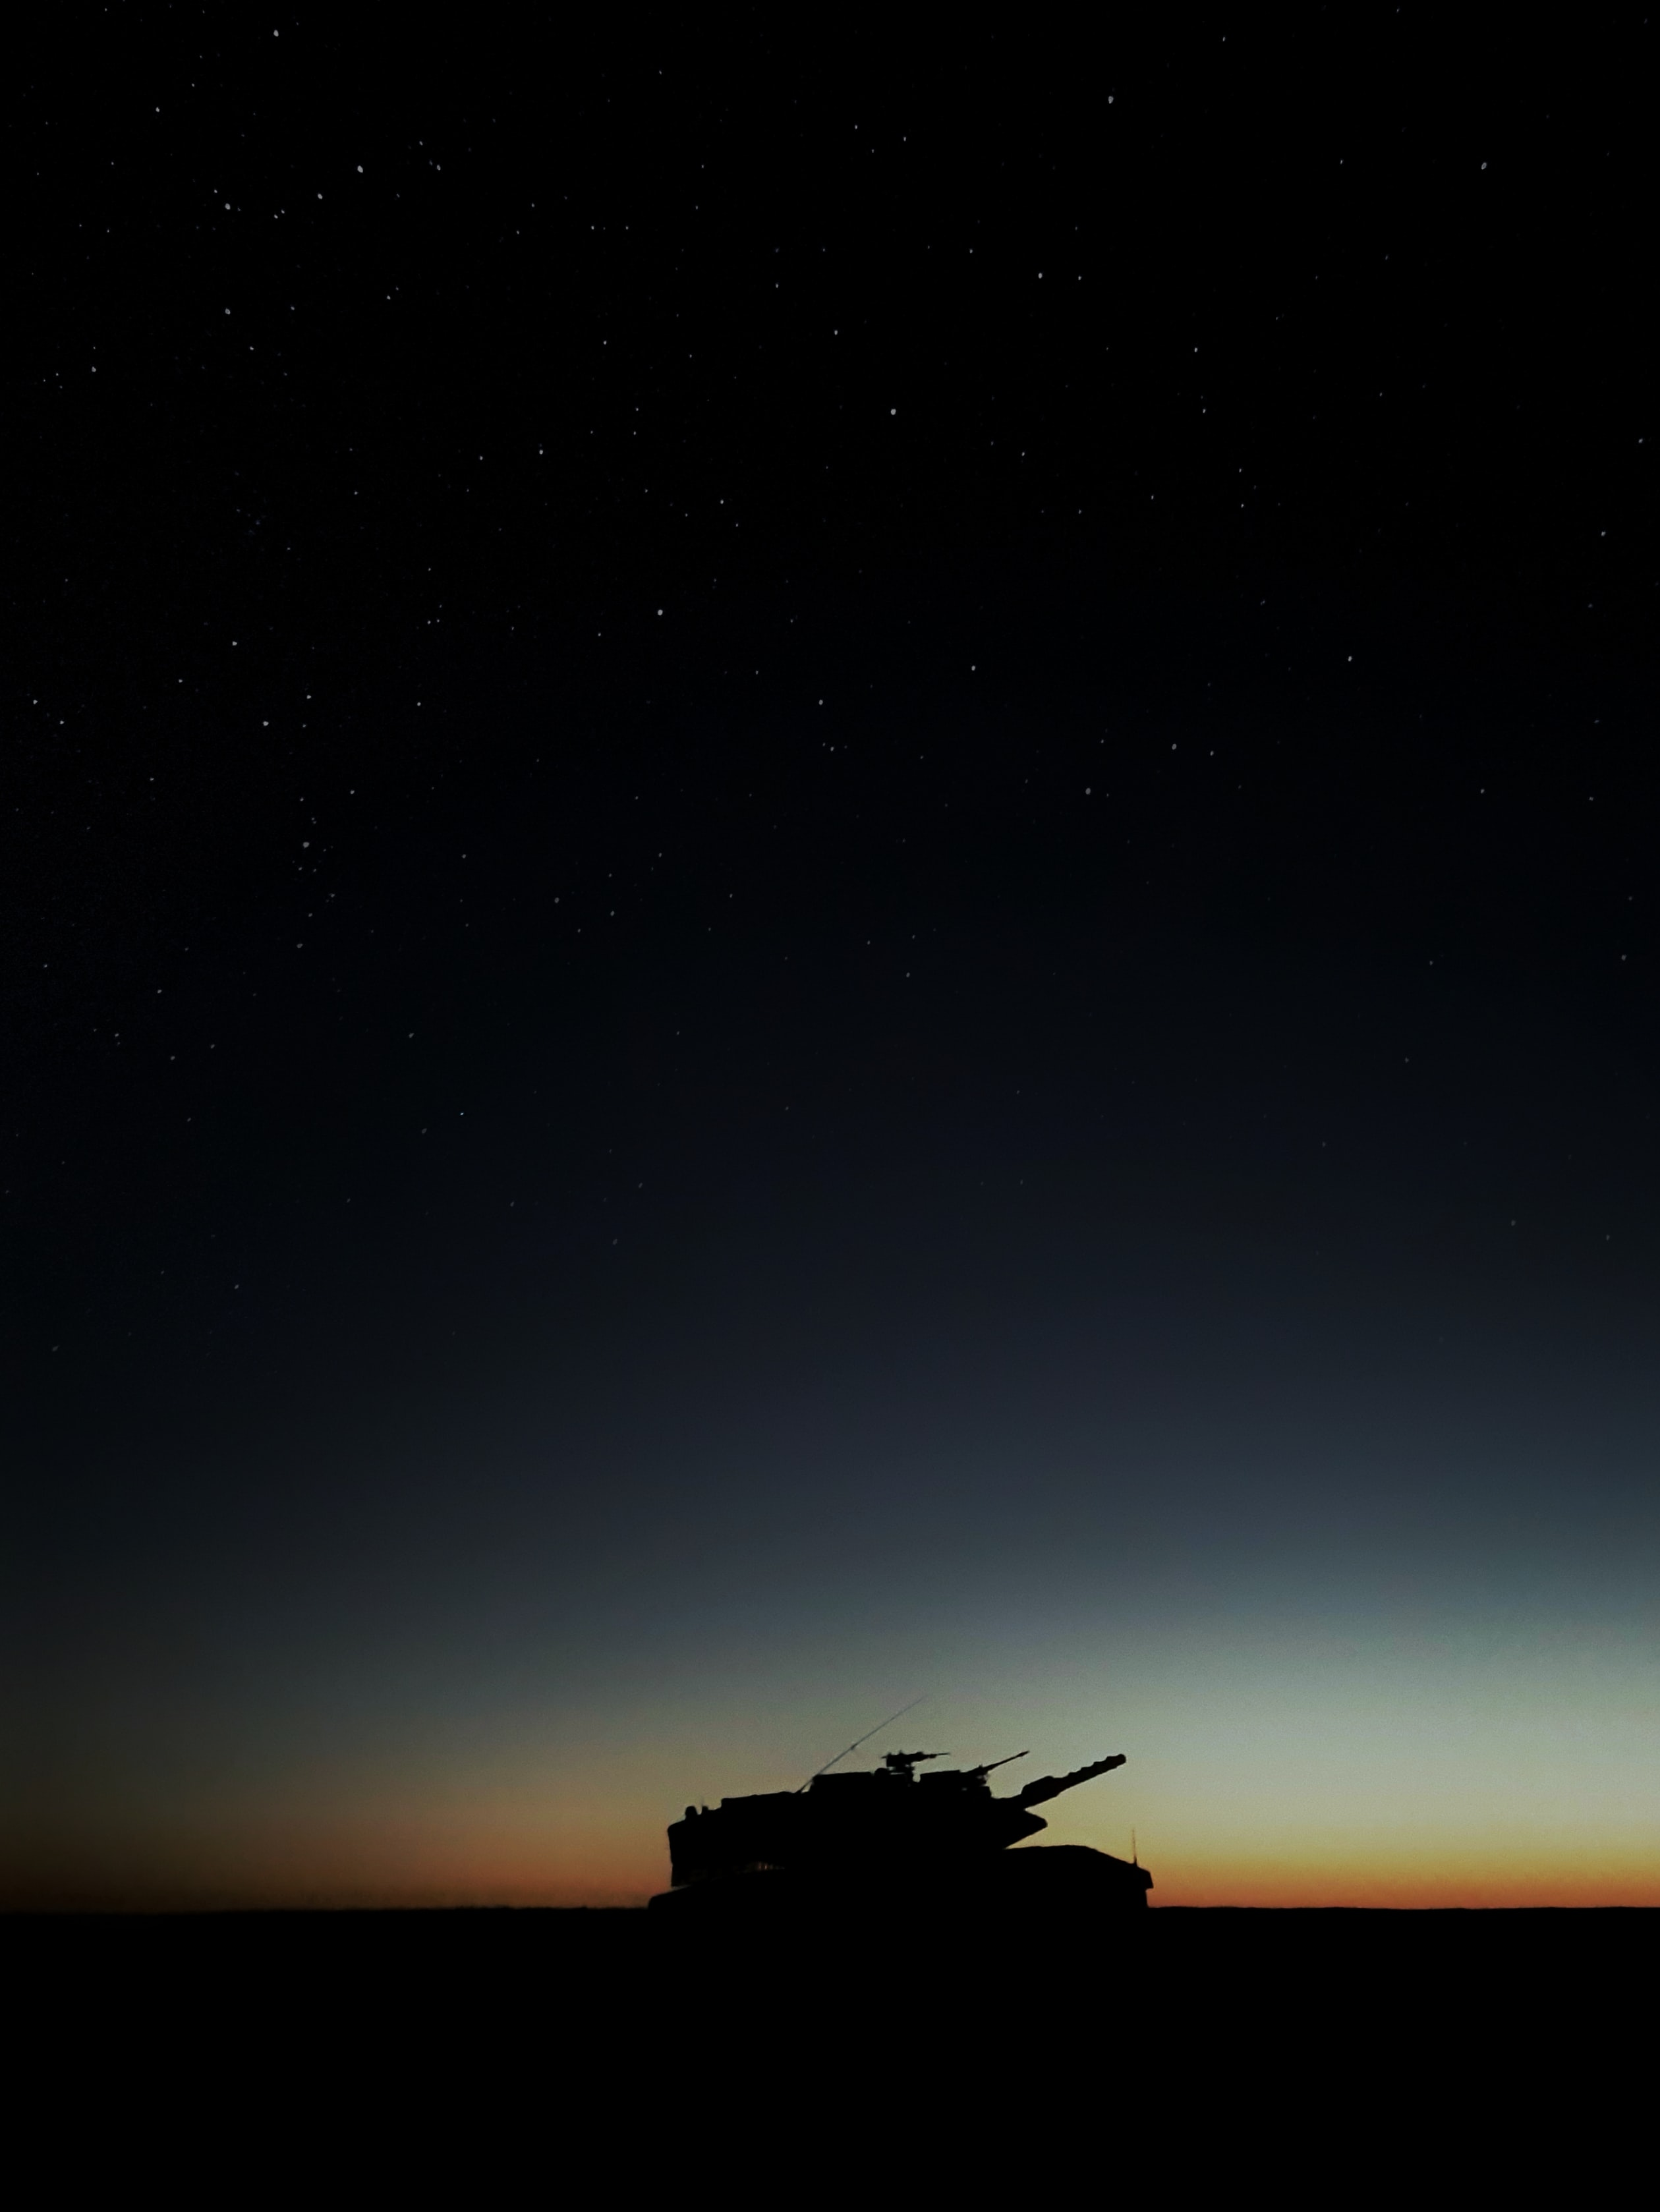 silhouette photo of battle tank